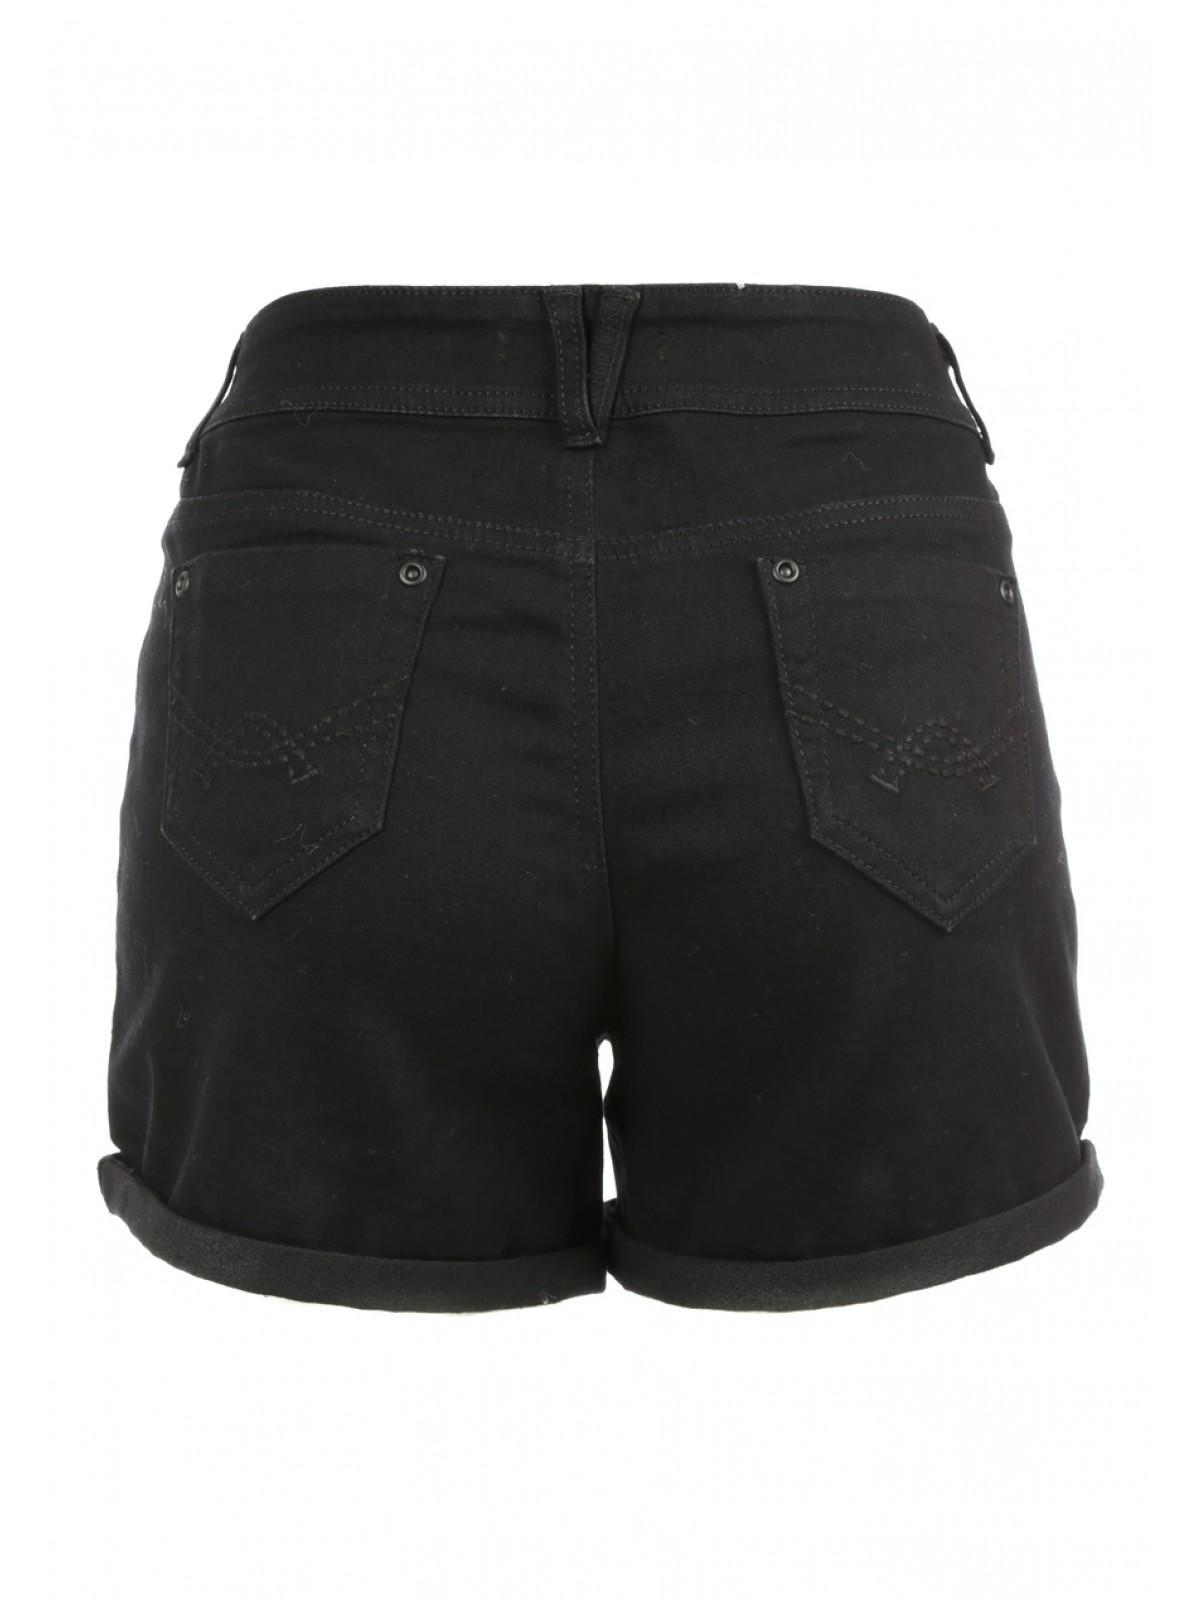 Black Denim Shorts Women - The Else